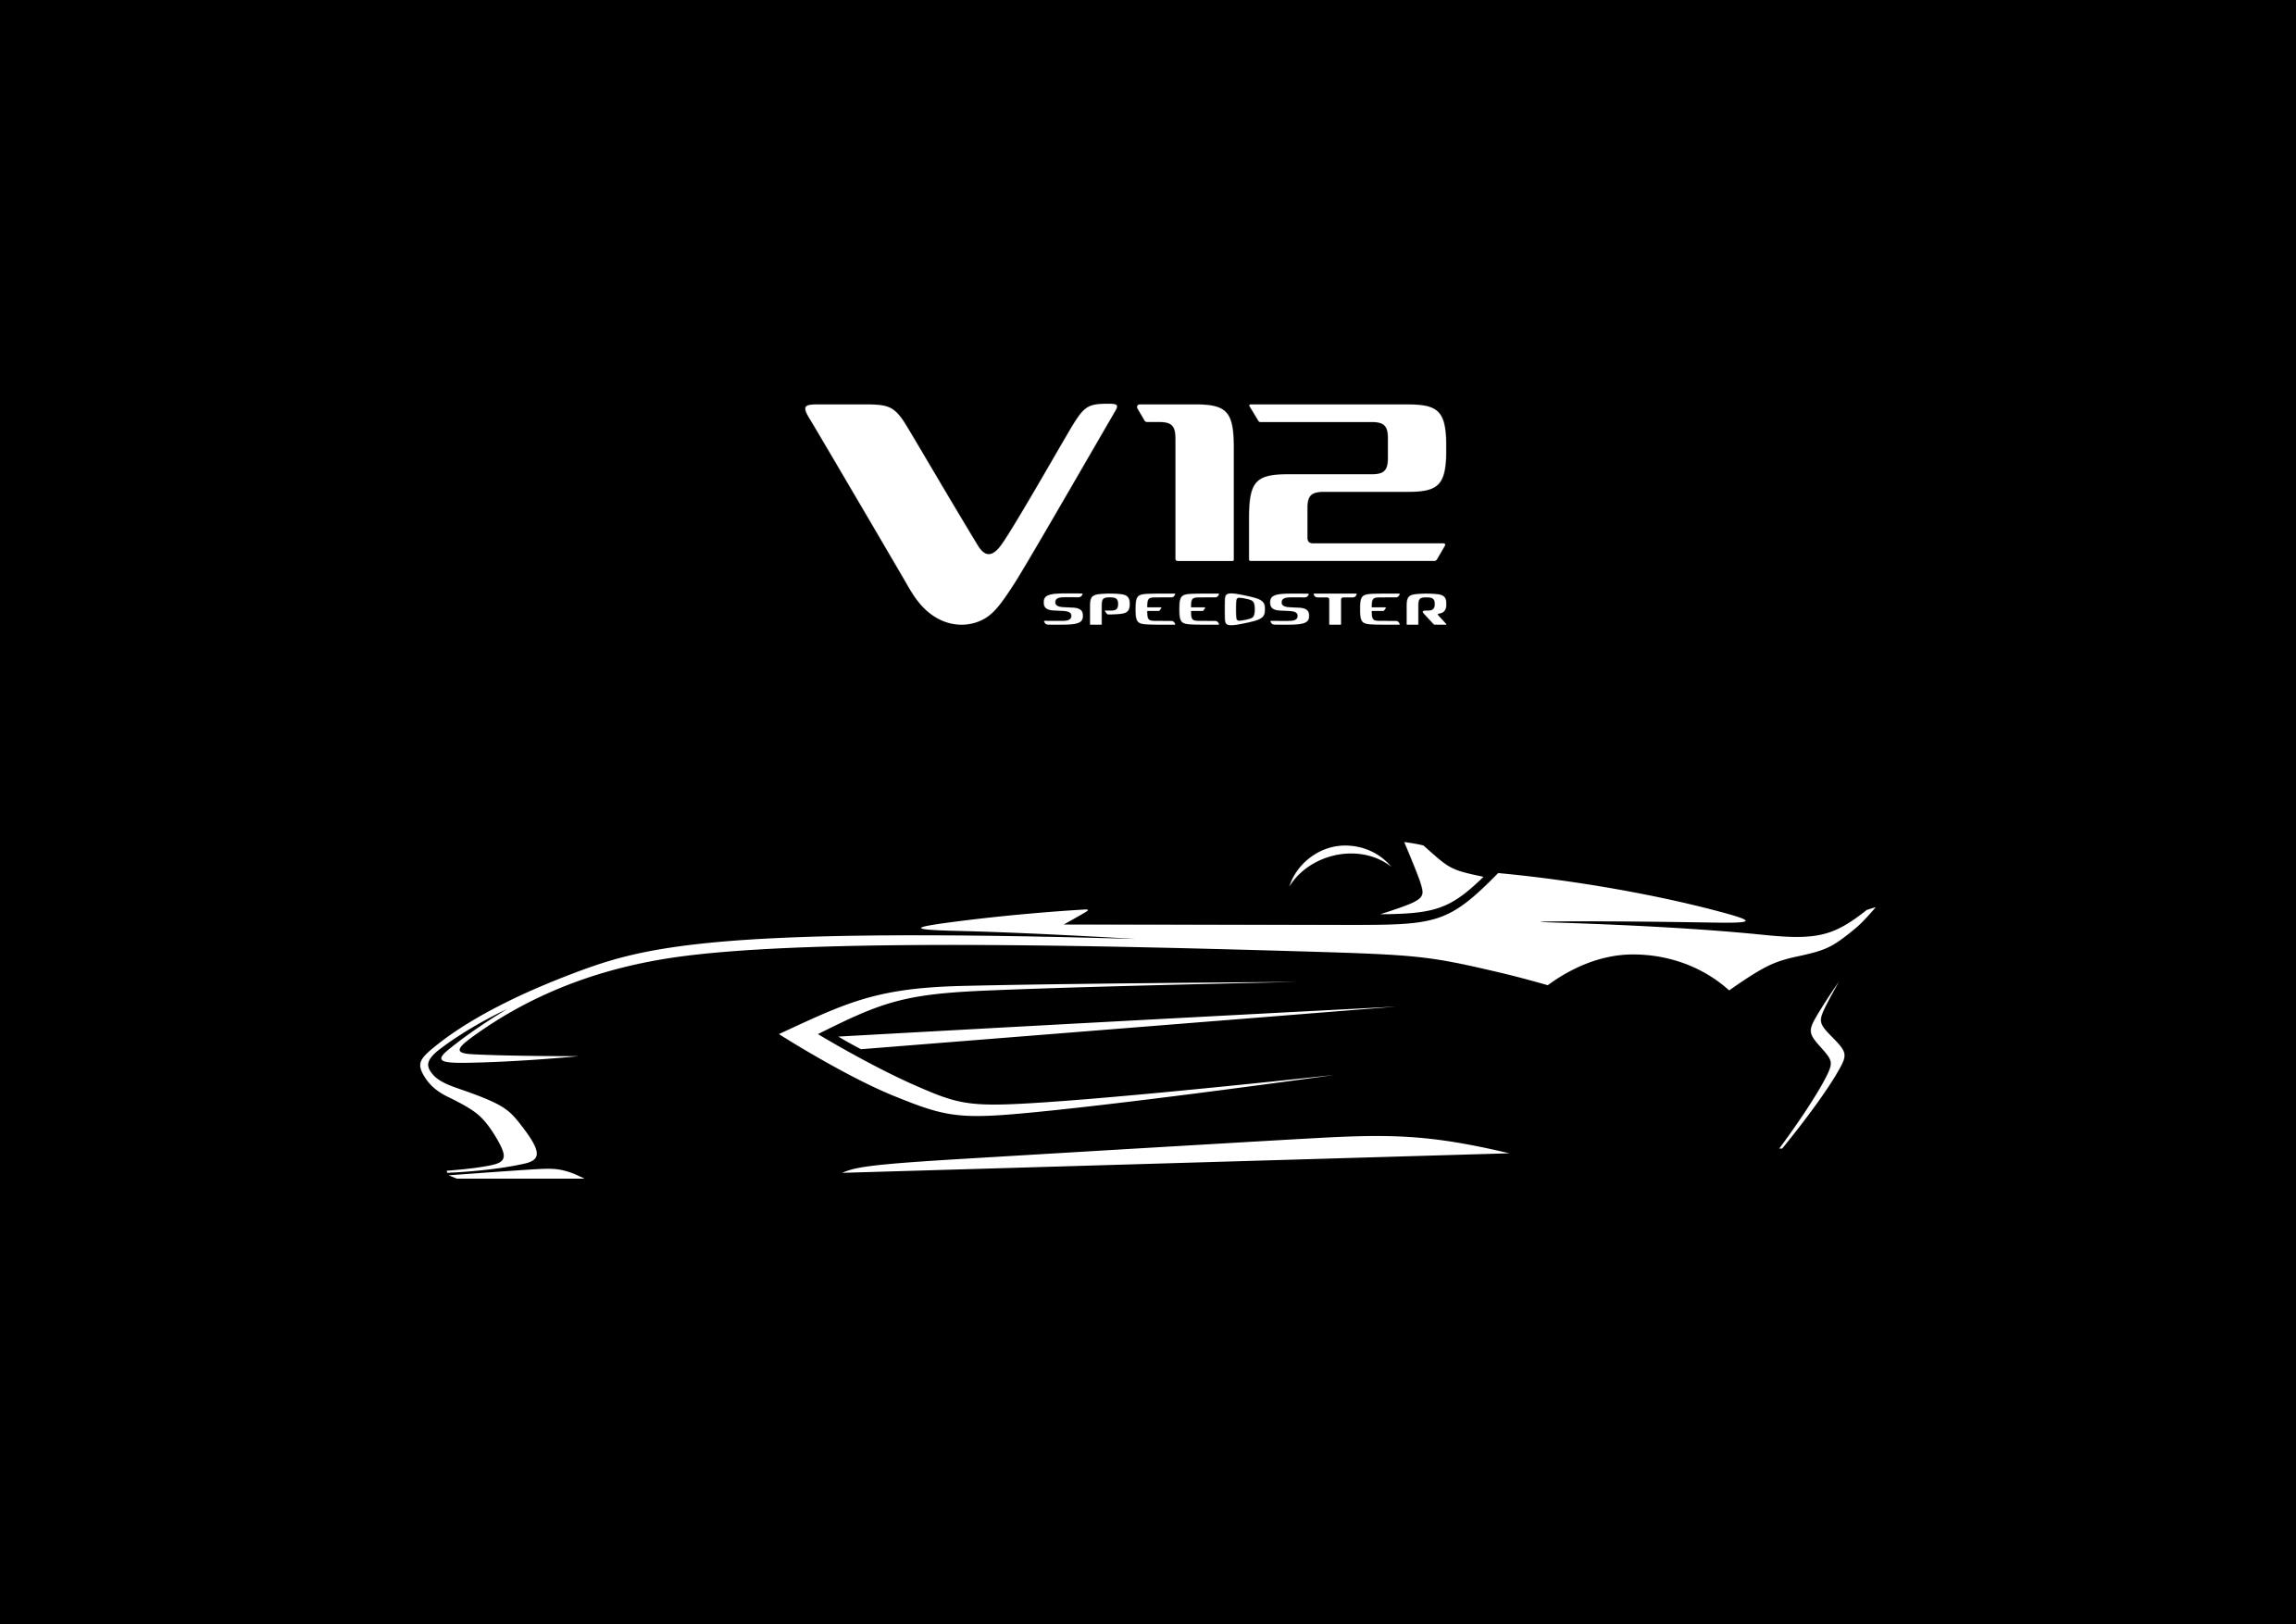 Aston Martin announces new Limited Edition V12 Speedster production